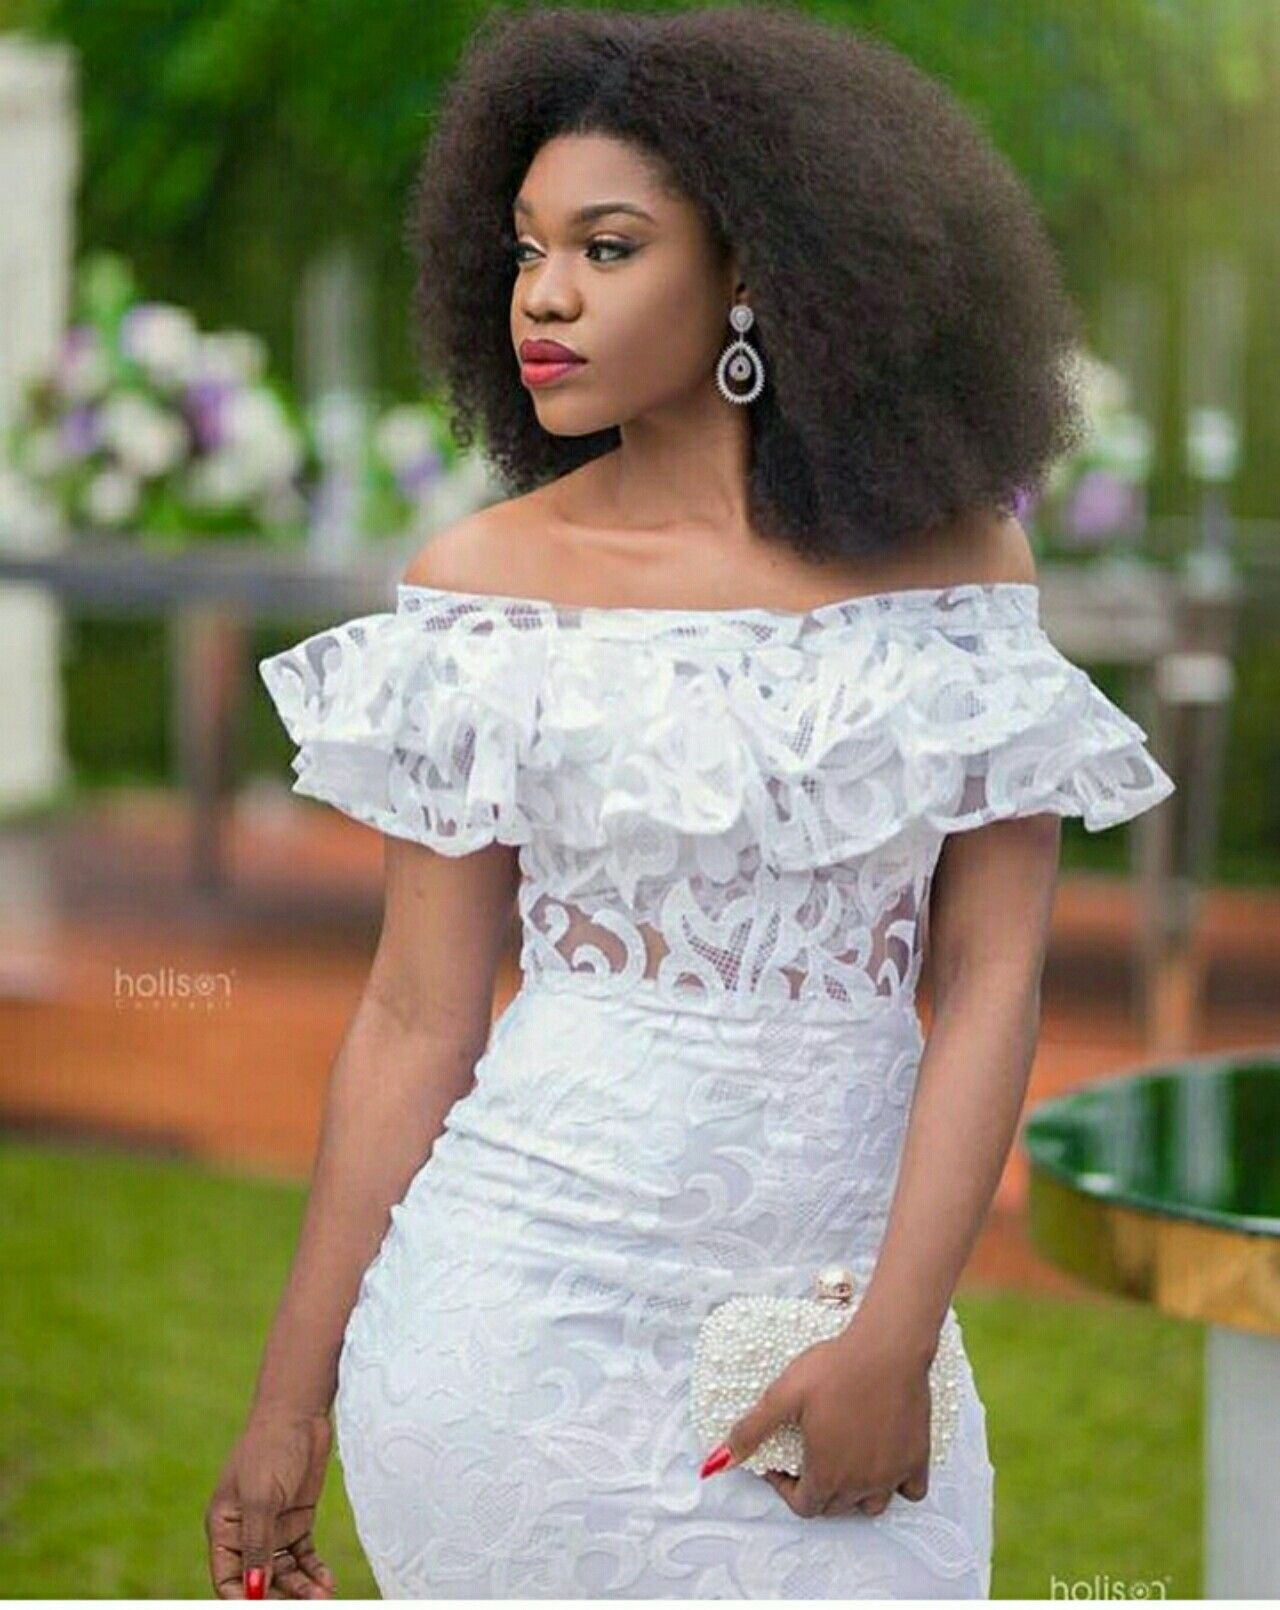 Pin by Naa Amerley Laryea on African fashion | Pinterest | Africans ...